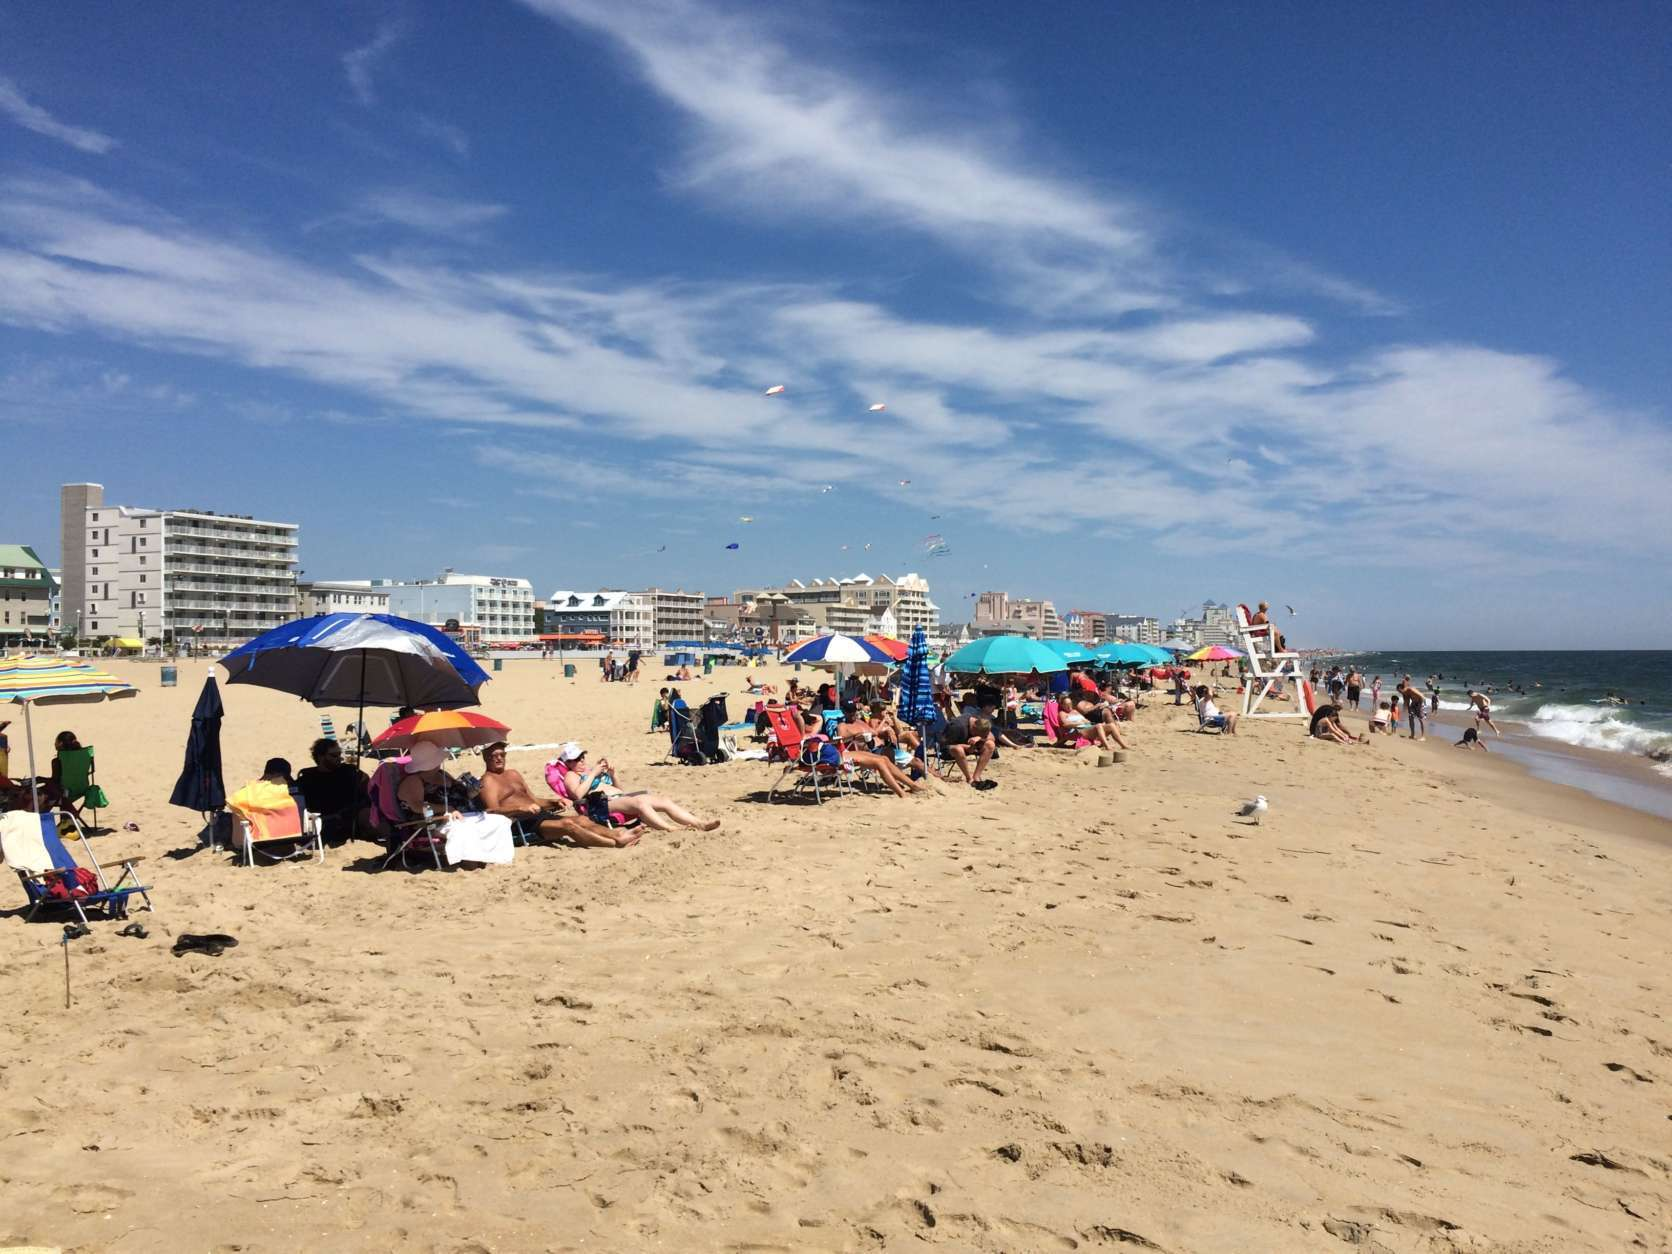 Photo shows people in bathing suits on the beach at Ocean City, Maryland